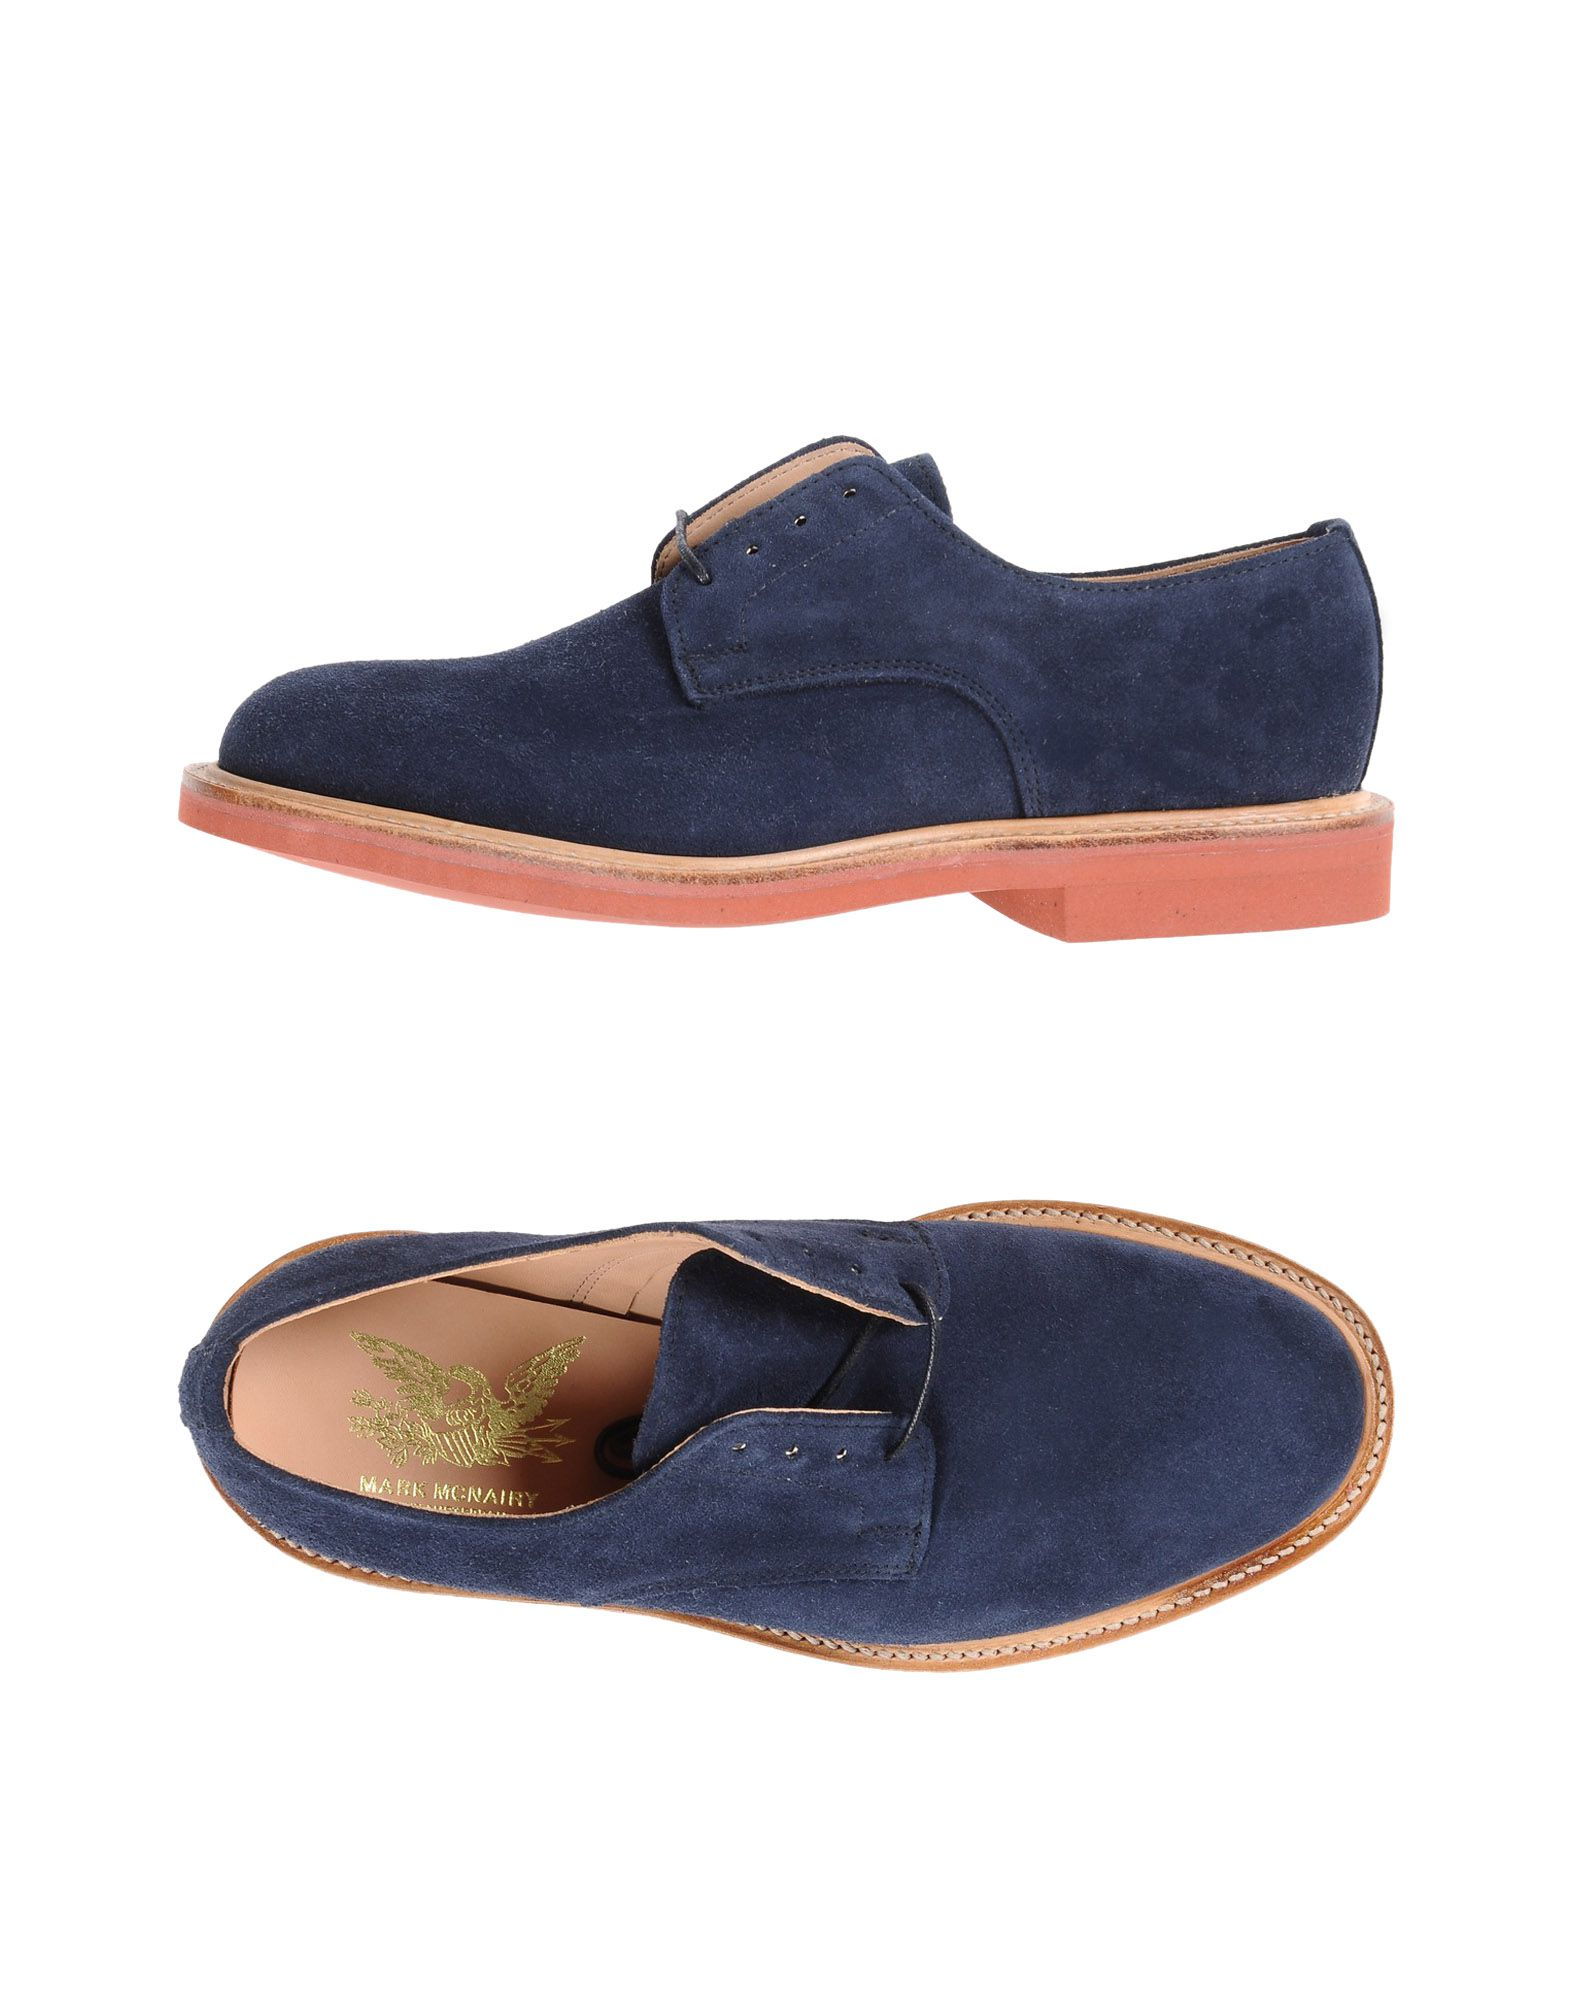 MARK MCNAIRY Laced Shoes in Dark Blue